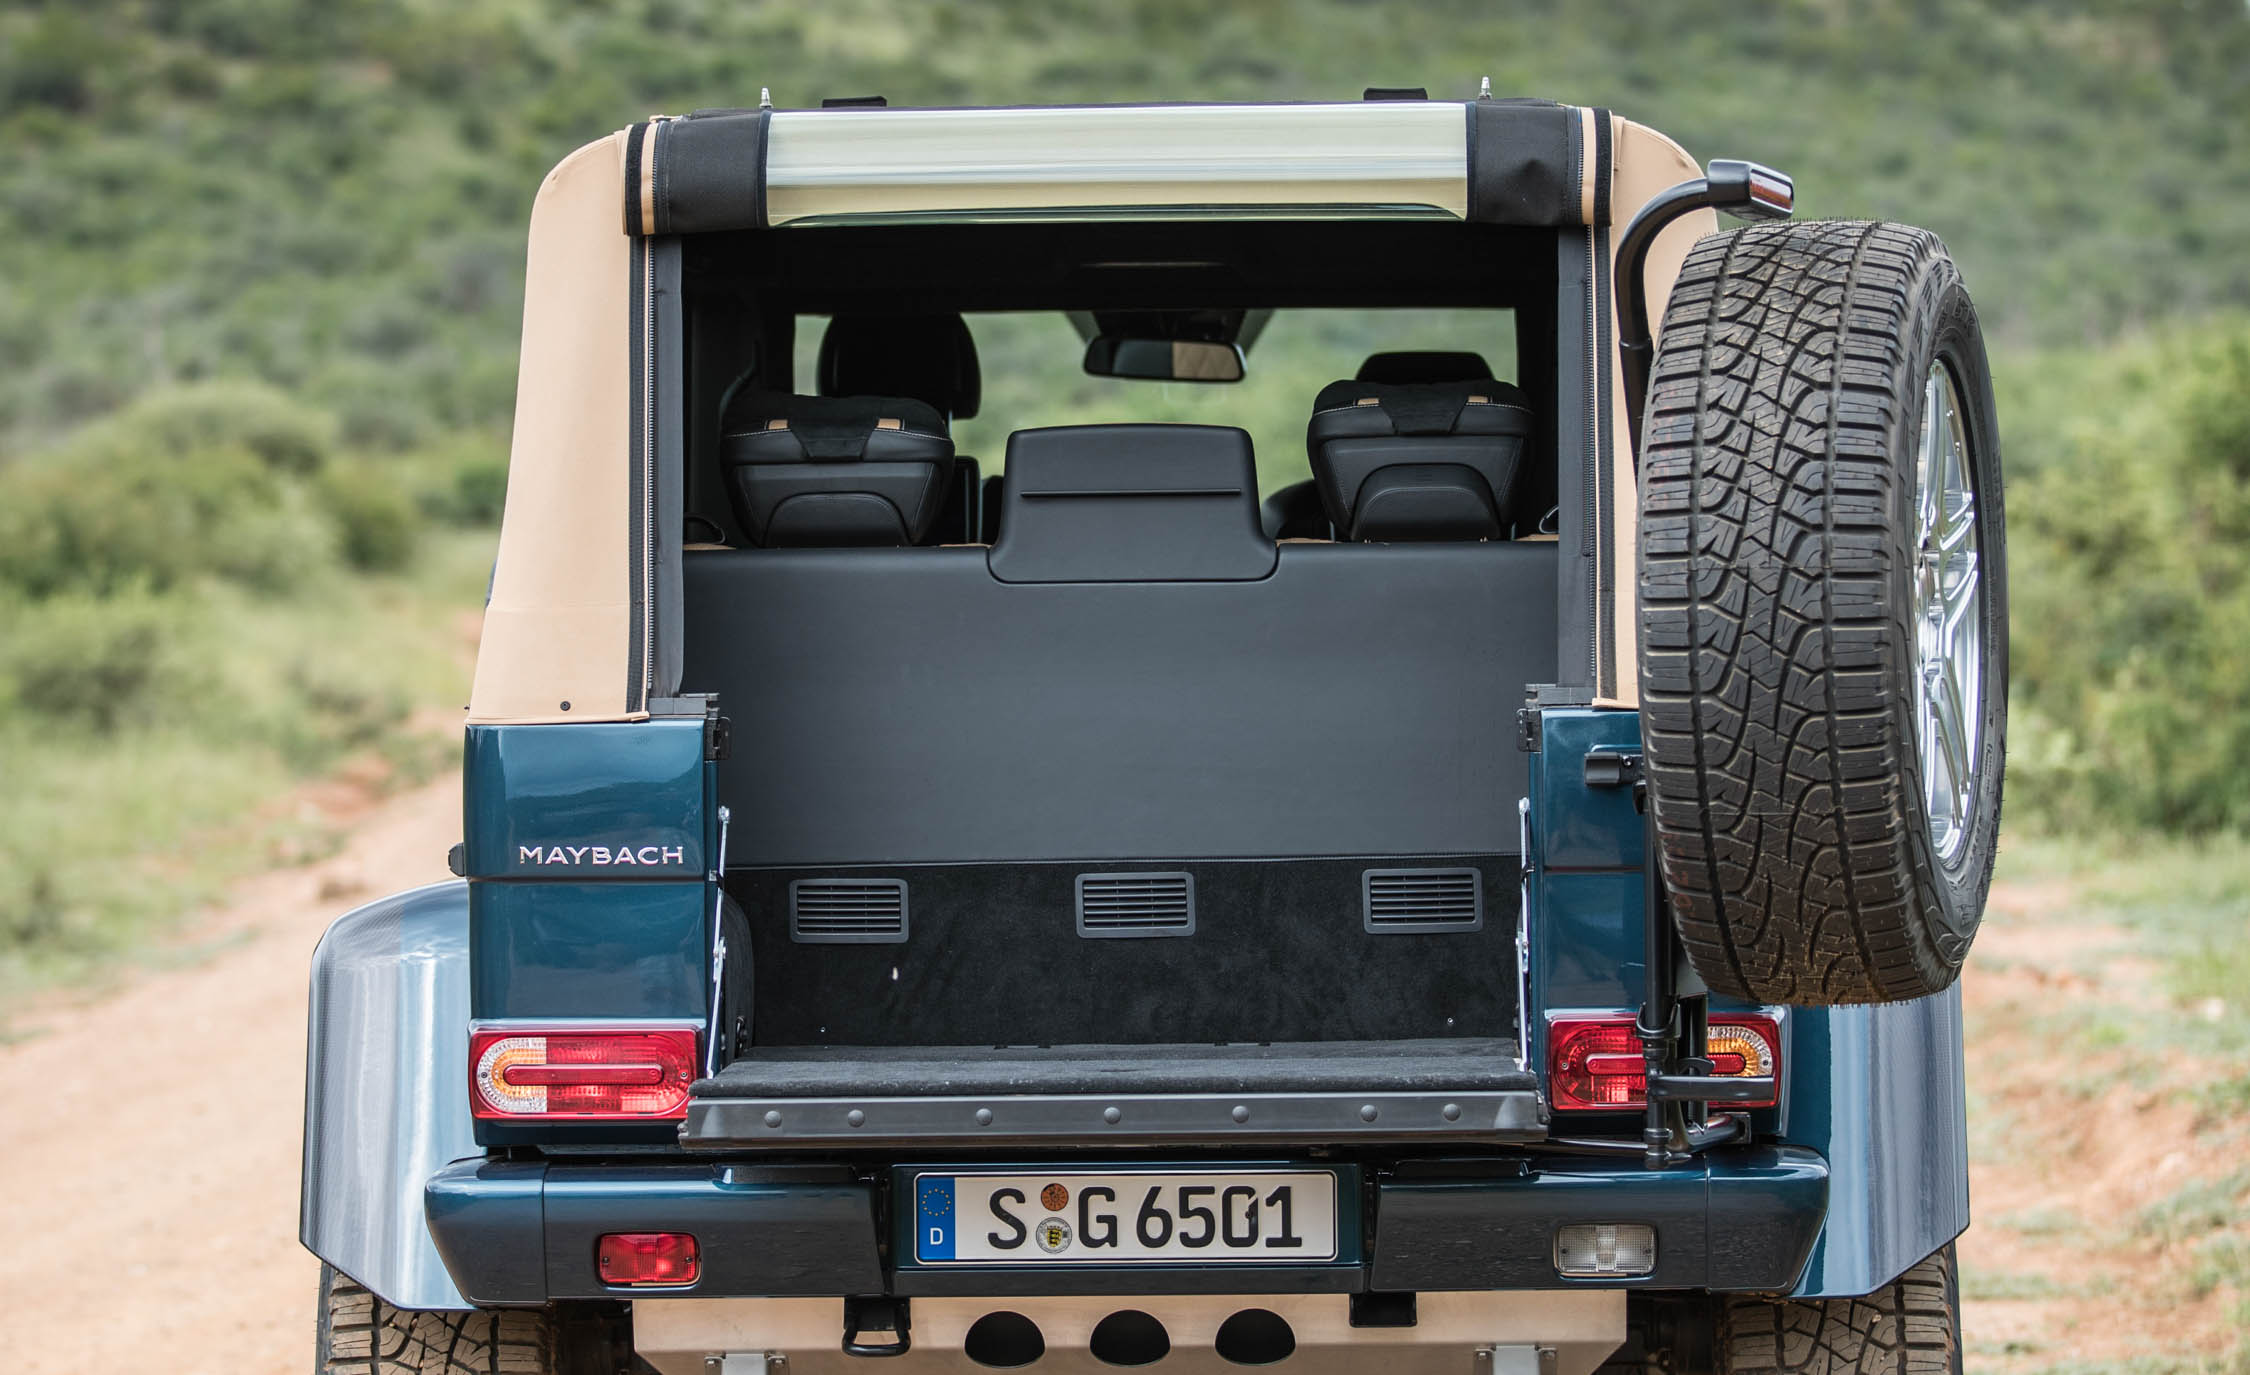 2018 Mercedes Maybach G650 Landaulet Interior View Cargo Trunk (Photo 29 of 52)